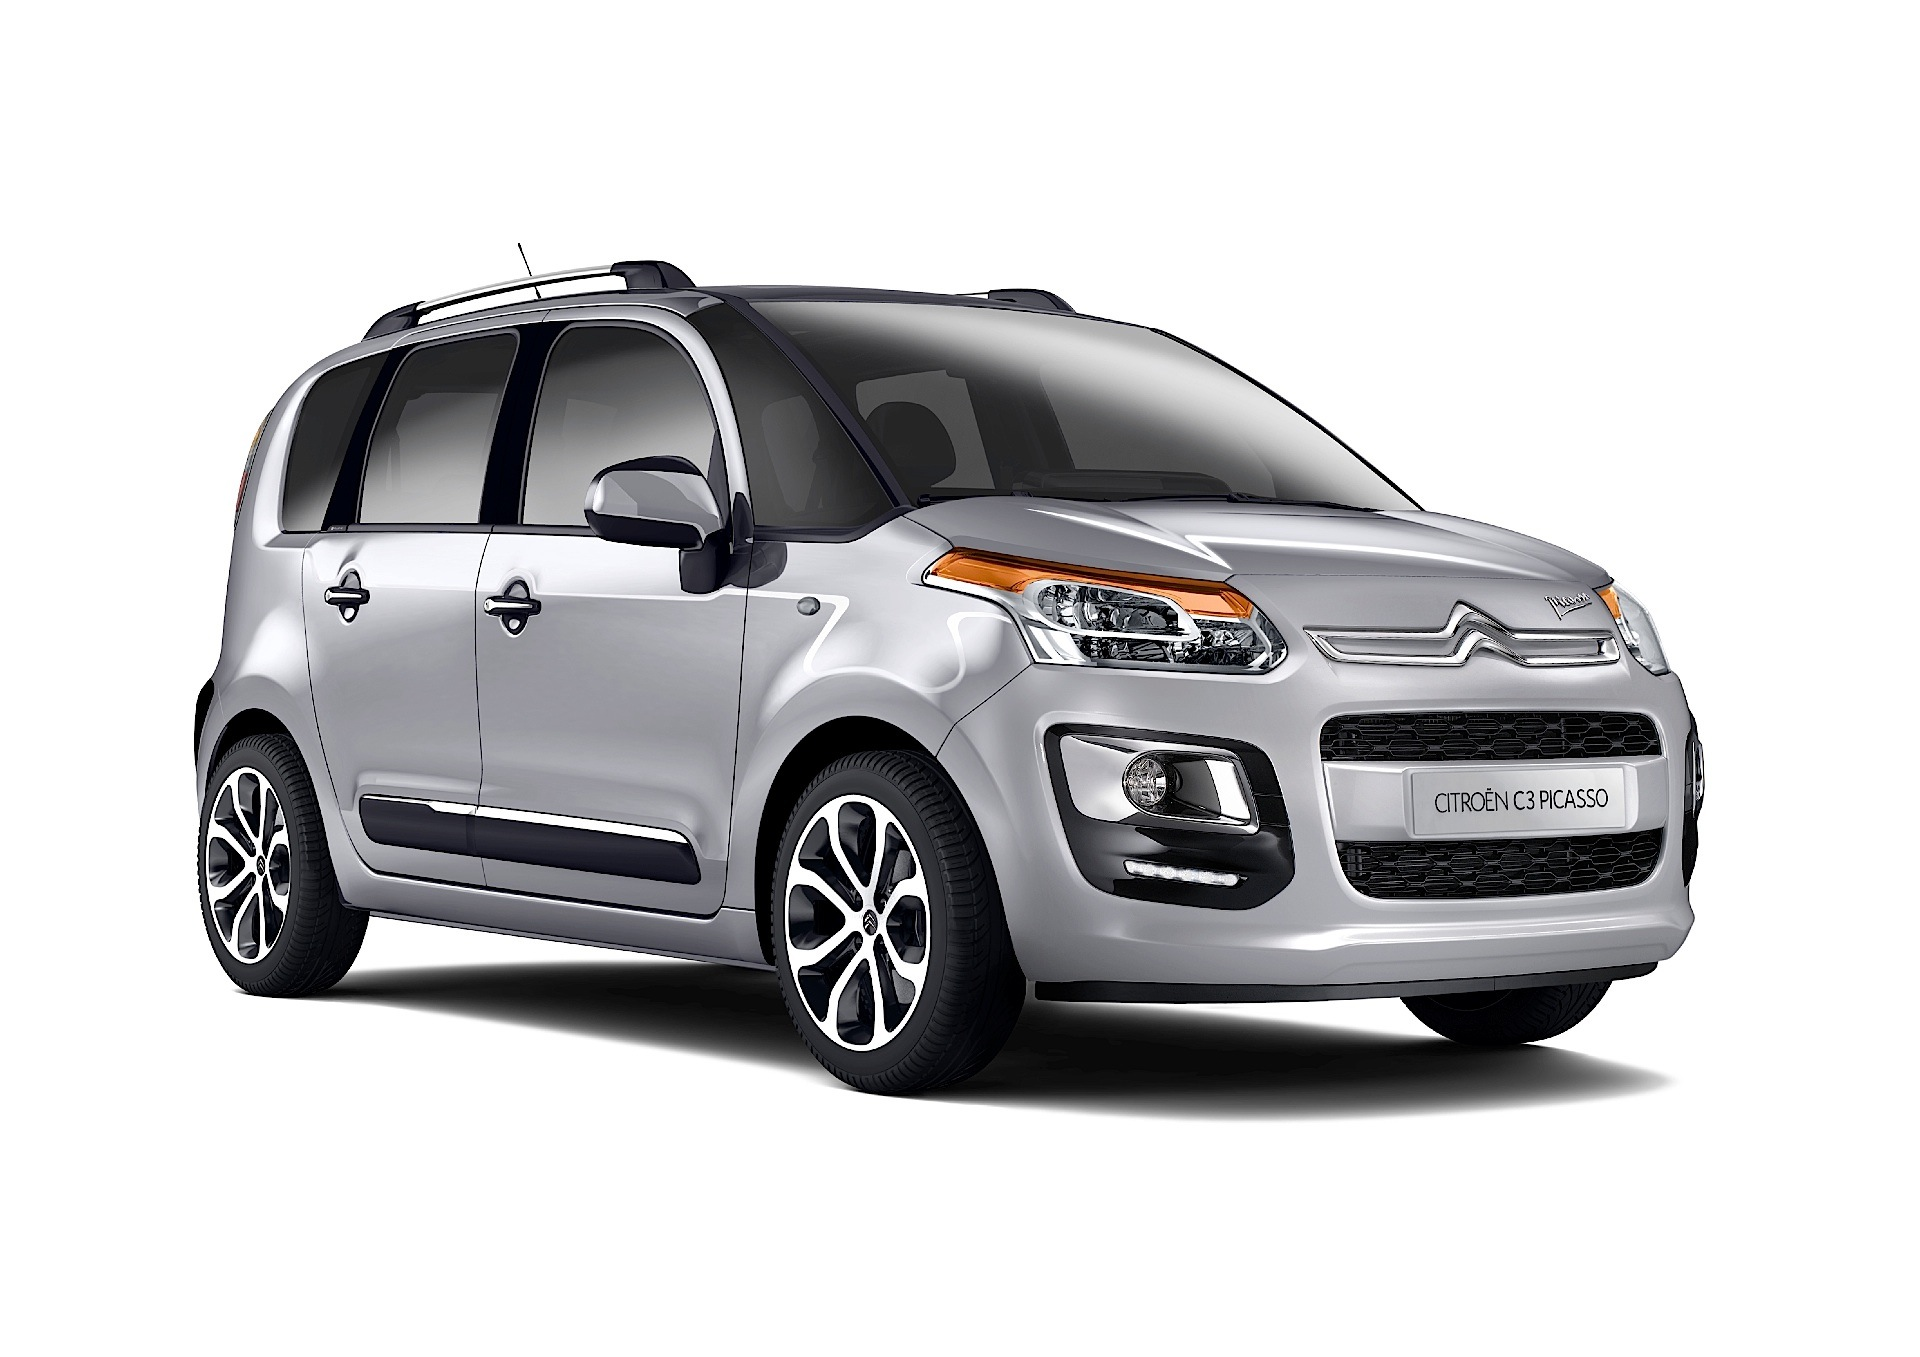 citroen c3 picasso specs photos 2013 2014 2015 2016 2017 2018 2019 autoevolution. Black Bedroom Furniture Sets. Home Design Ideas